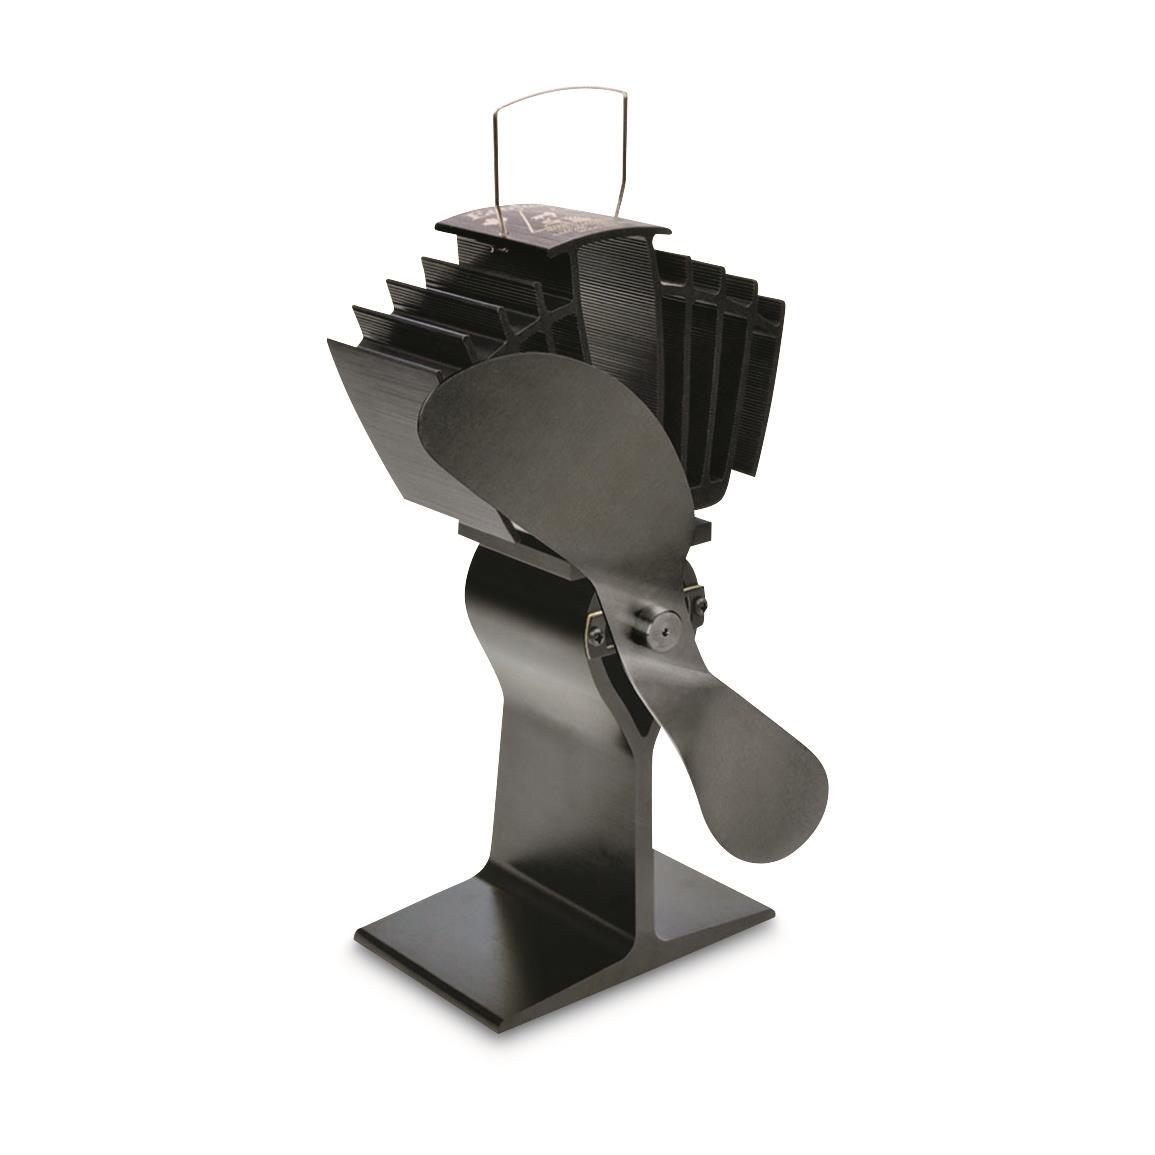 Ecofan AirMax Heat-Powered Wood Stove Fan, Black